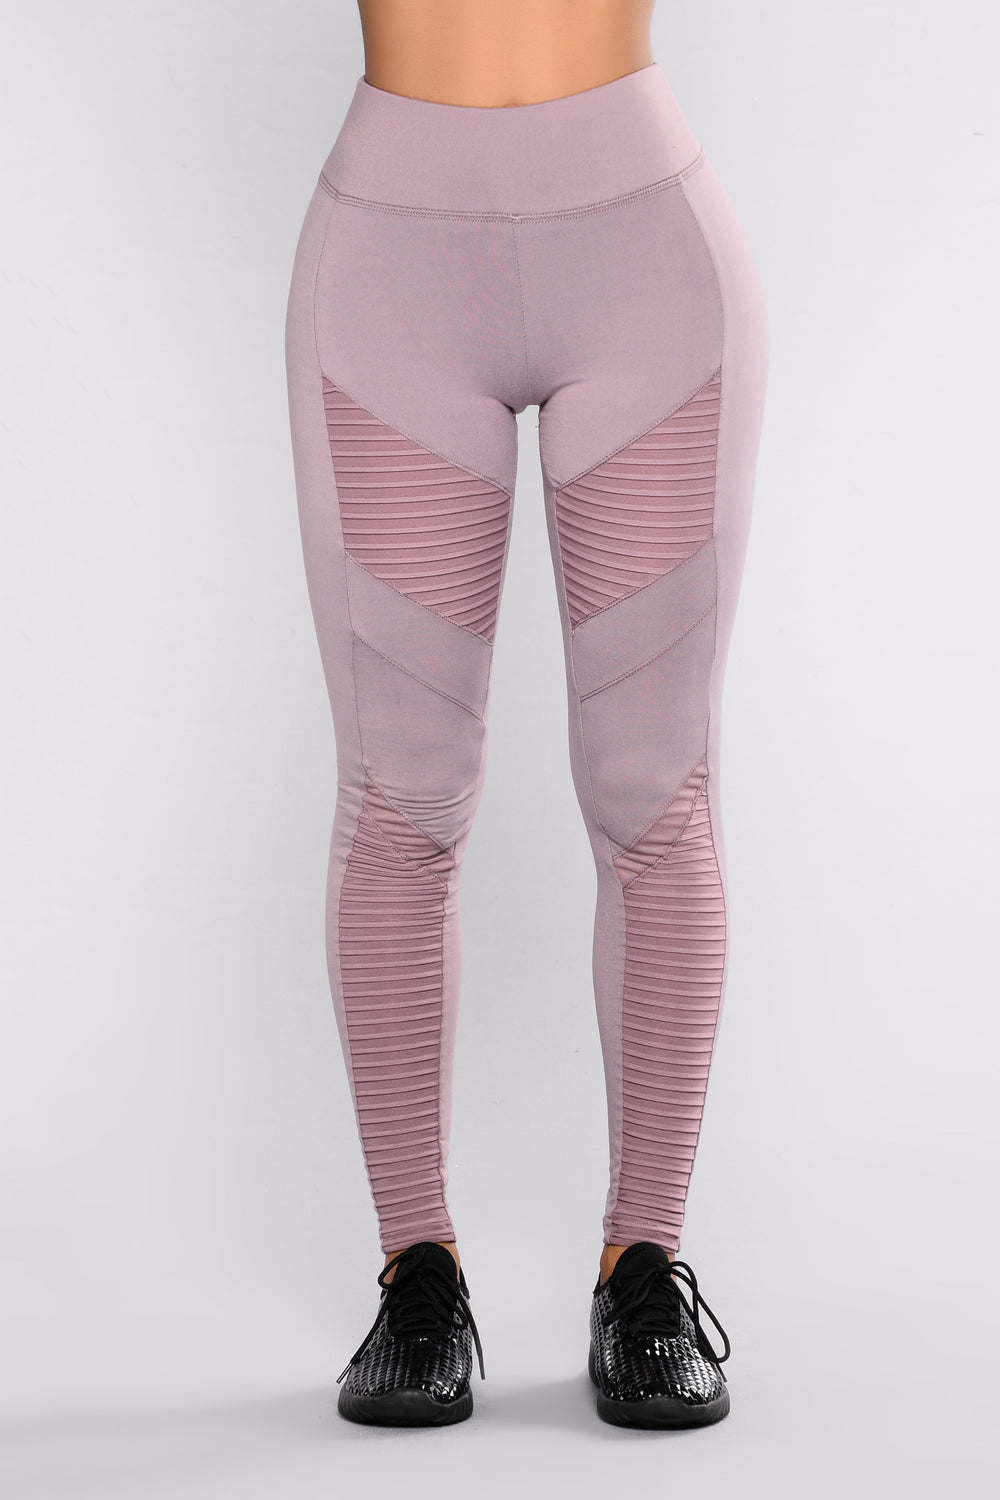 Brielle Motto Leggings - Mauve